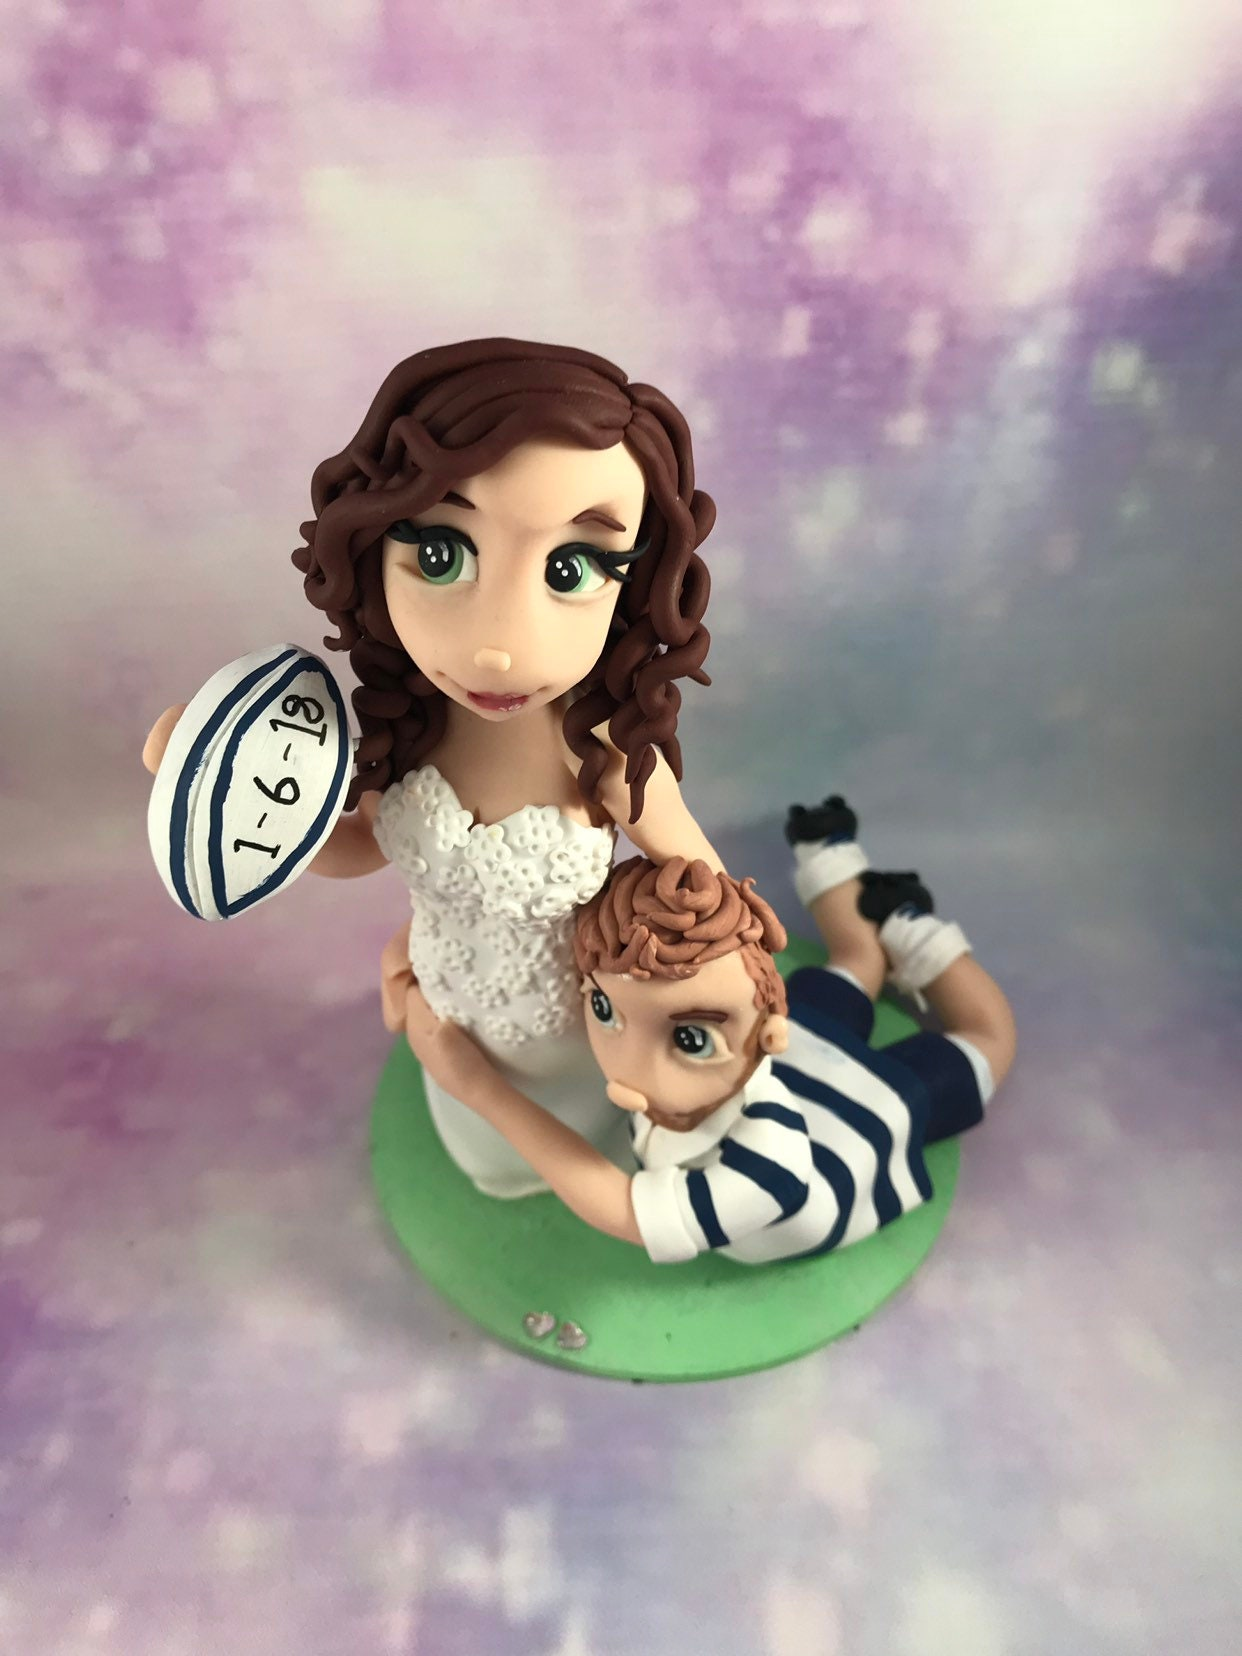 rugby themed wedding cake toppers personalised wedding cake topper and groom figures 19467